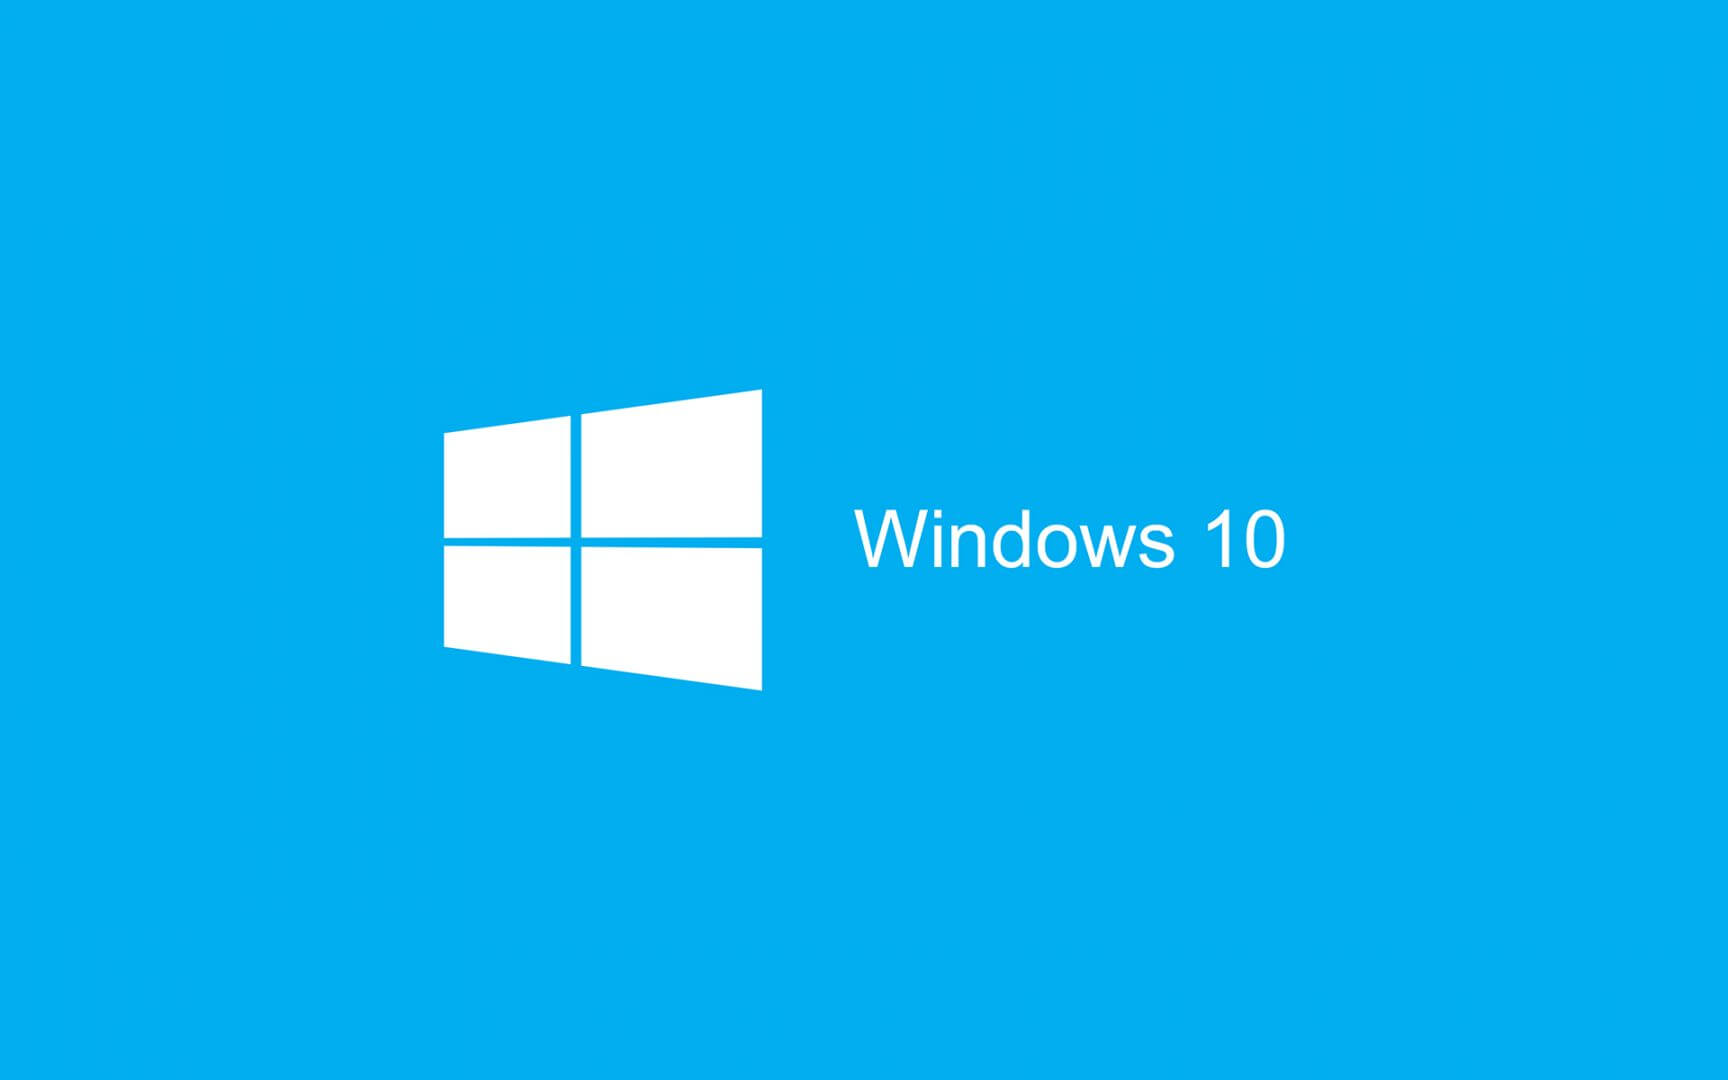 Microsoft Showcase Windows 10 Multi-Tasking Capability